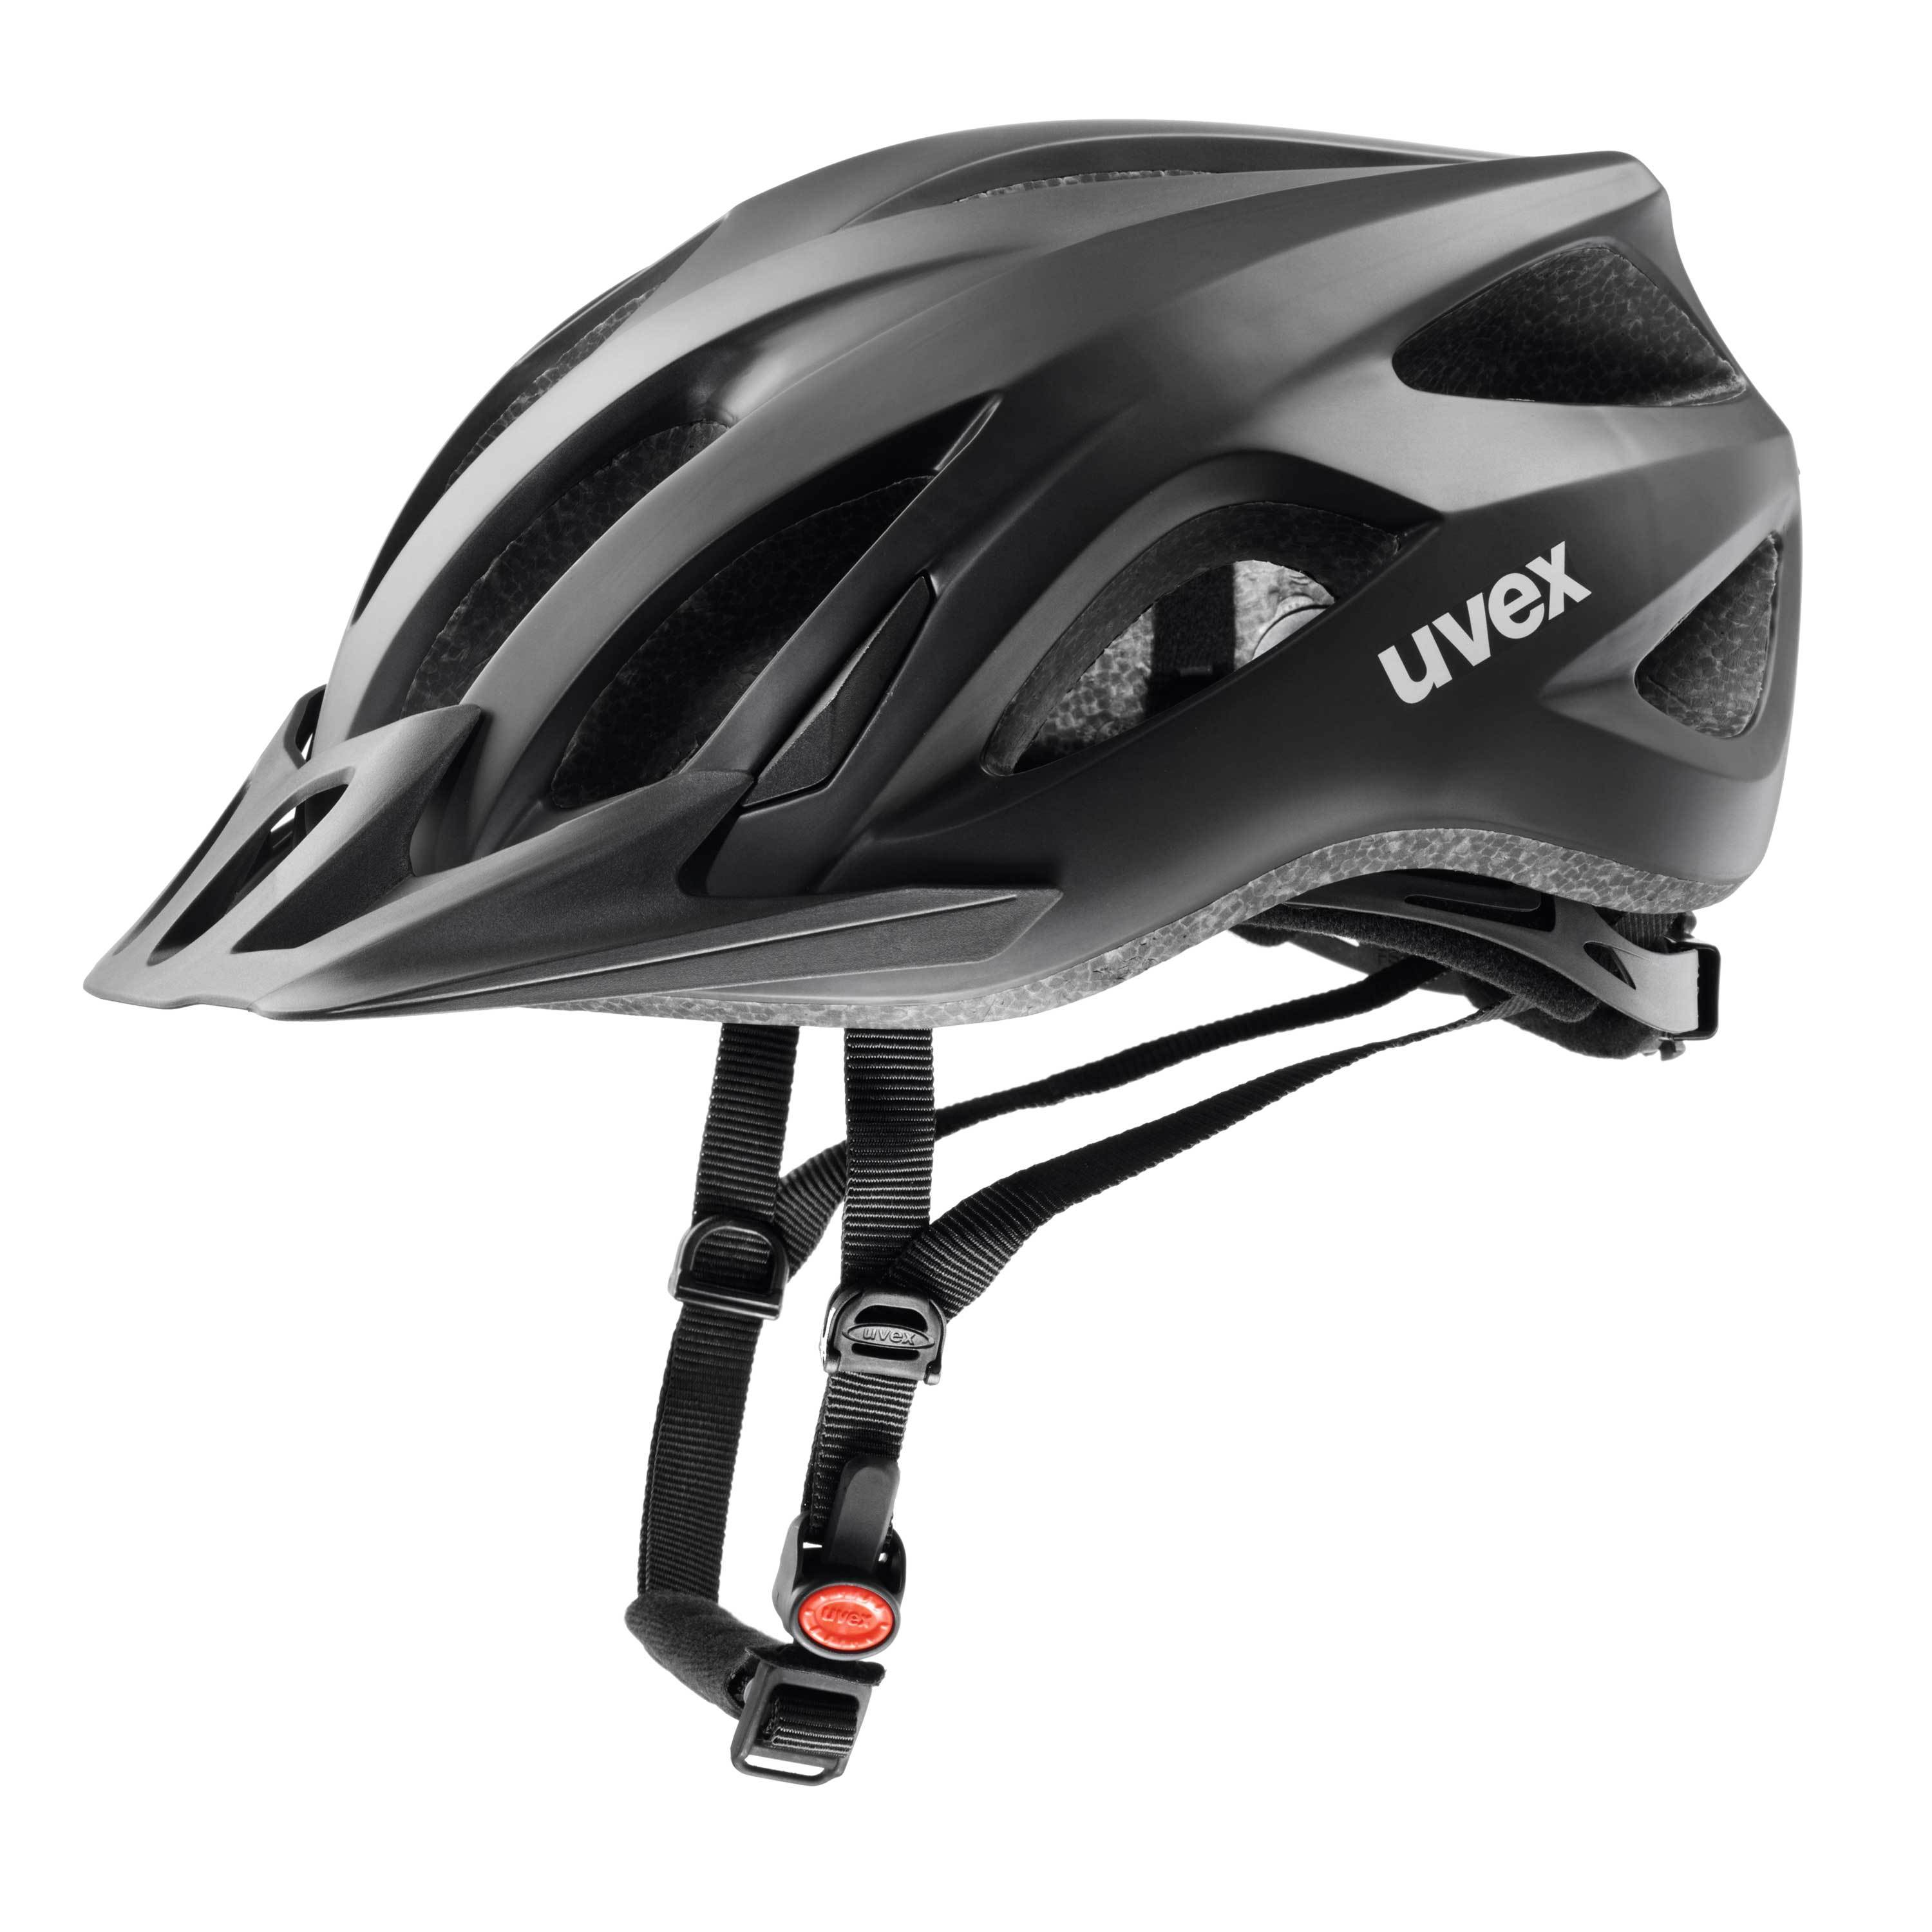 uvex viva 2 fahrradhelm radhelm mtb helm trekking helm. Black Bedroom Furniture Sets. Home Design Ideas